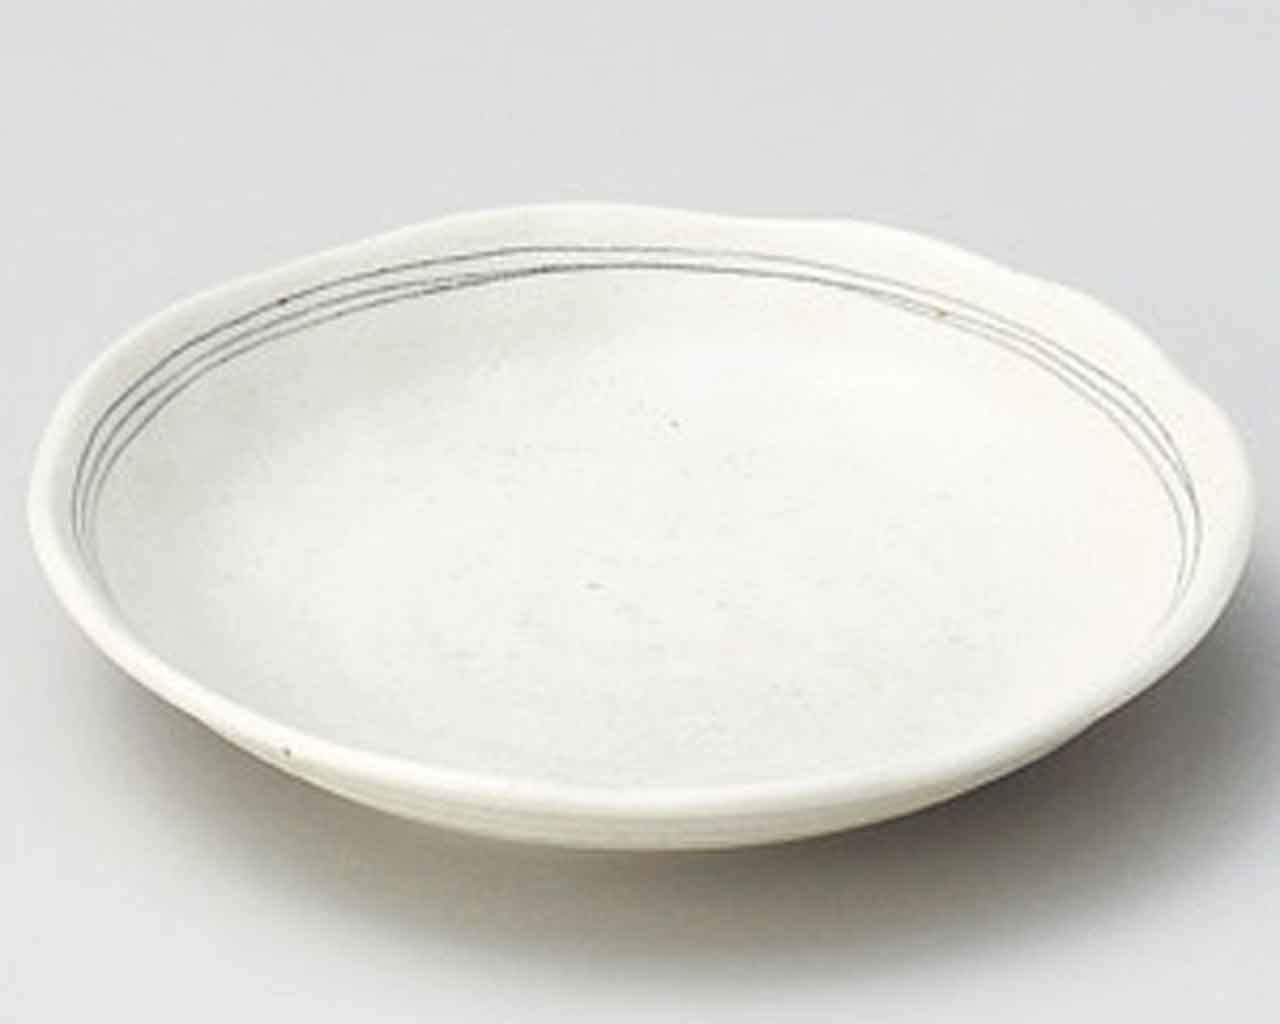 Brown Line 4.7inch Set of 2 Small Plates White porcelain Made in Japan